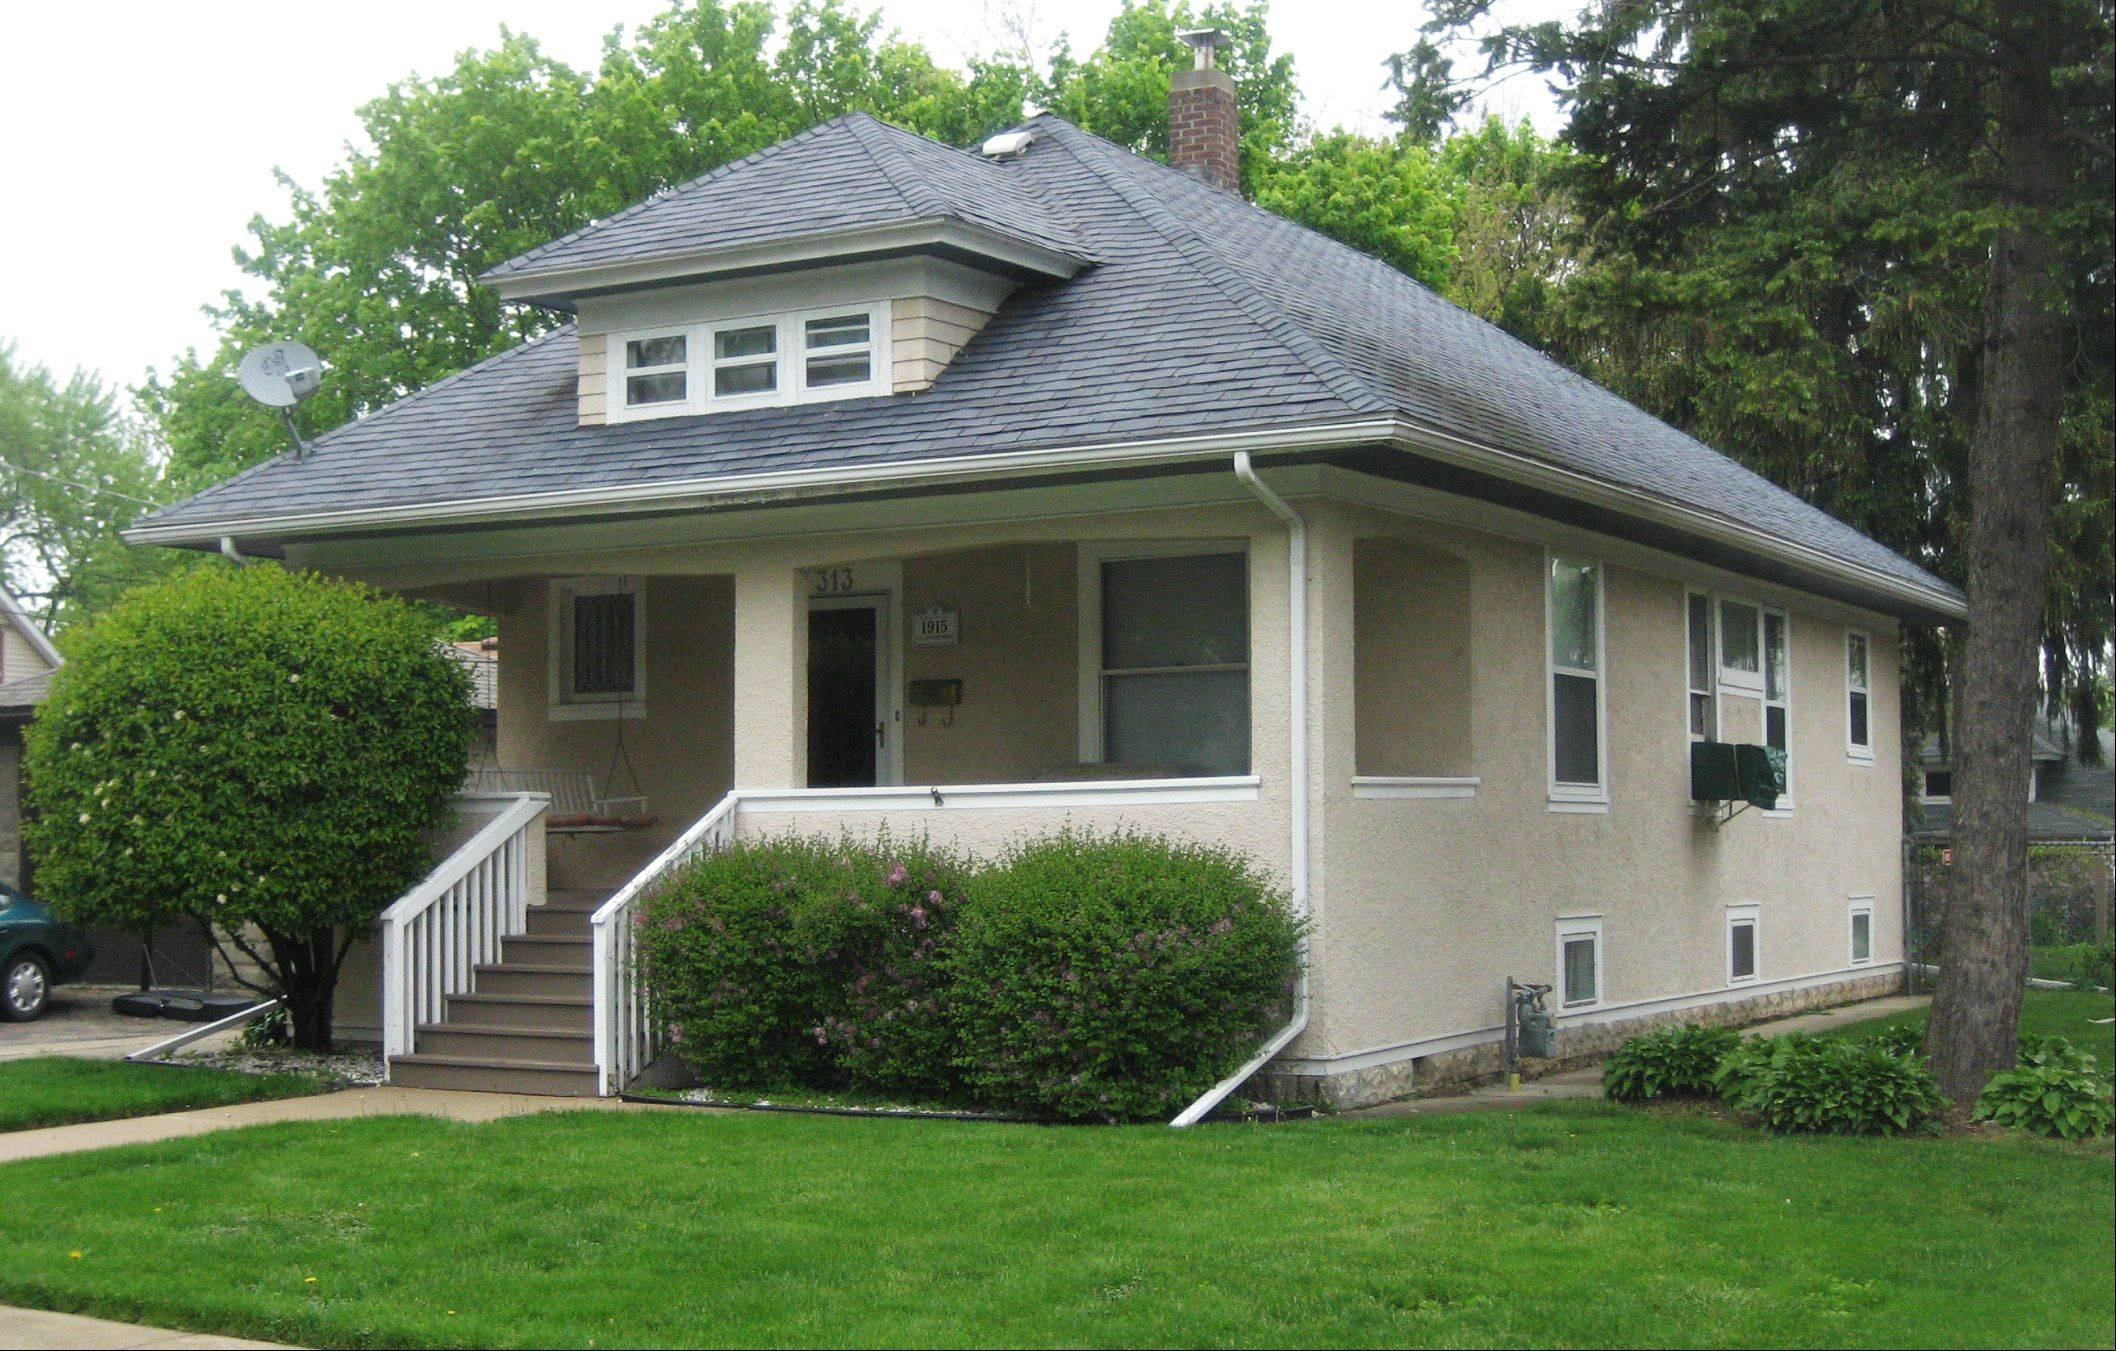 This house at 313 Perry St. will be on this year's Historic Elgin House Tour.